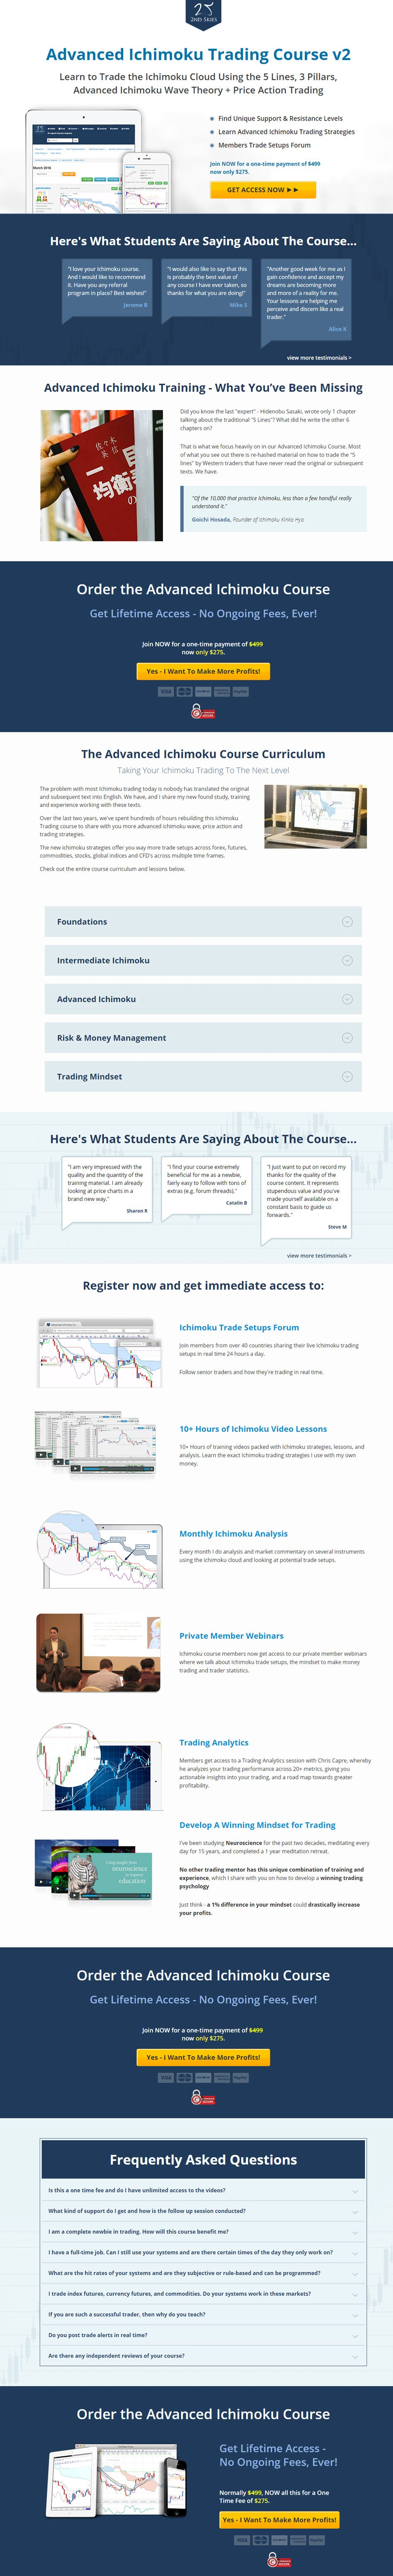 Advanced Ichimoku Trading Course V2 by 2nd Skies (2019)